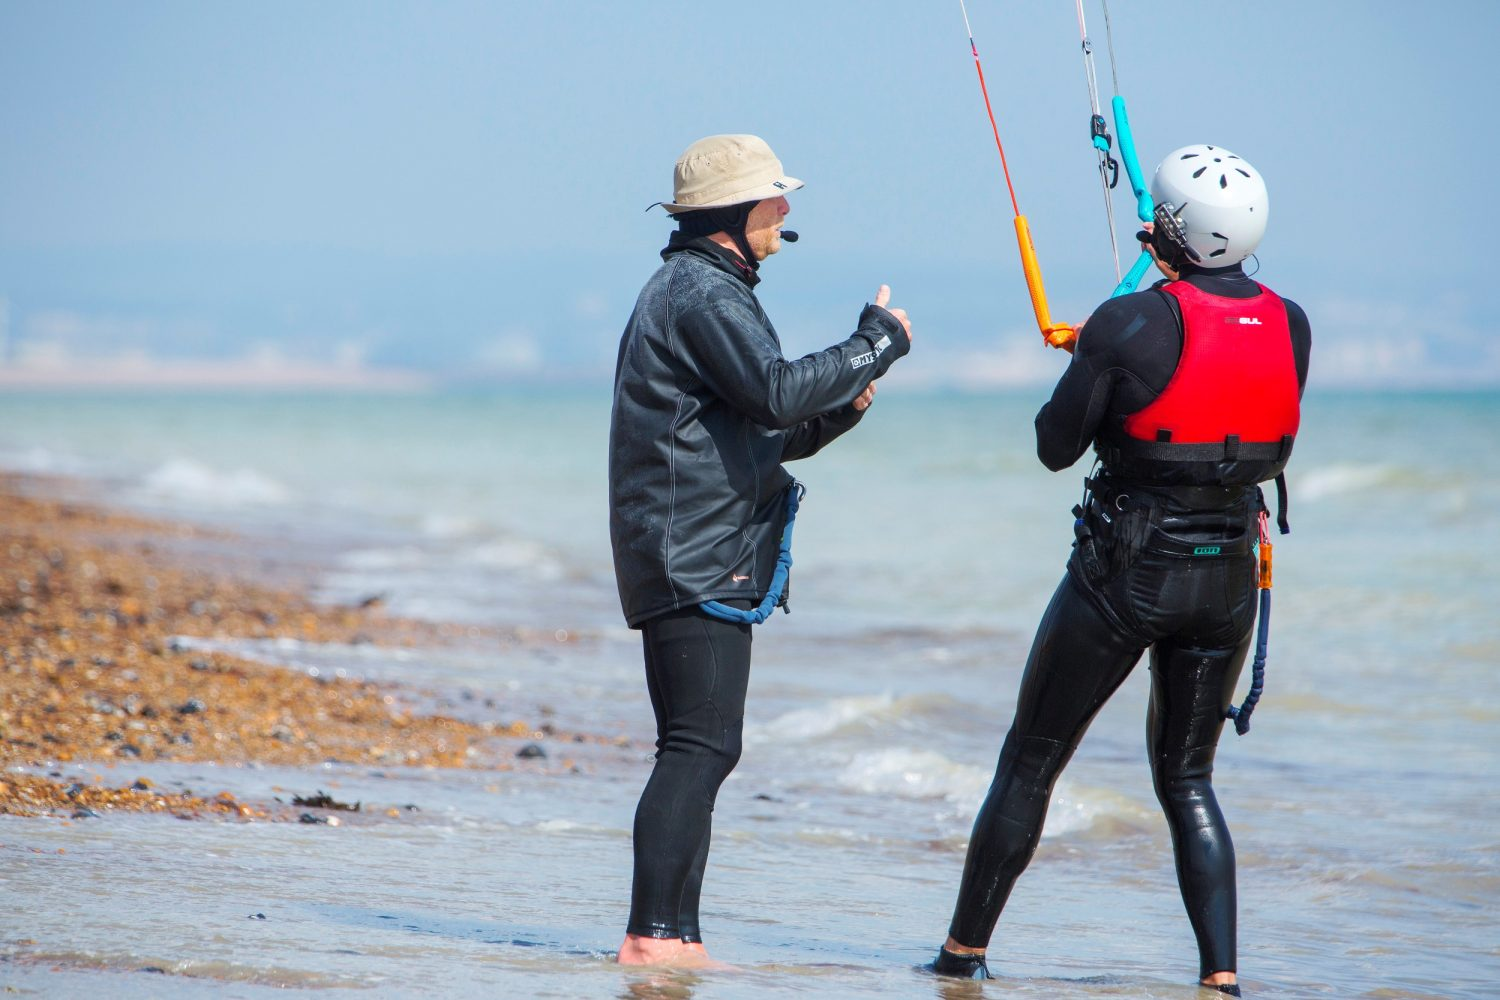 Learn to kitesurf in West Sussex